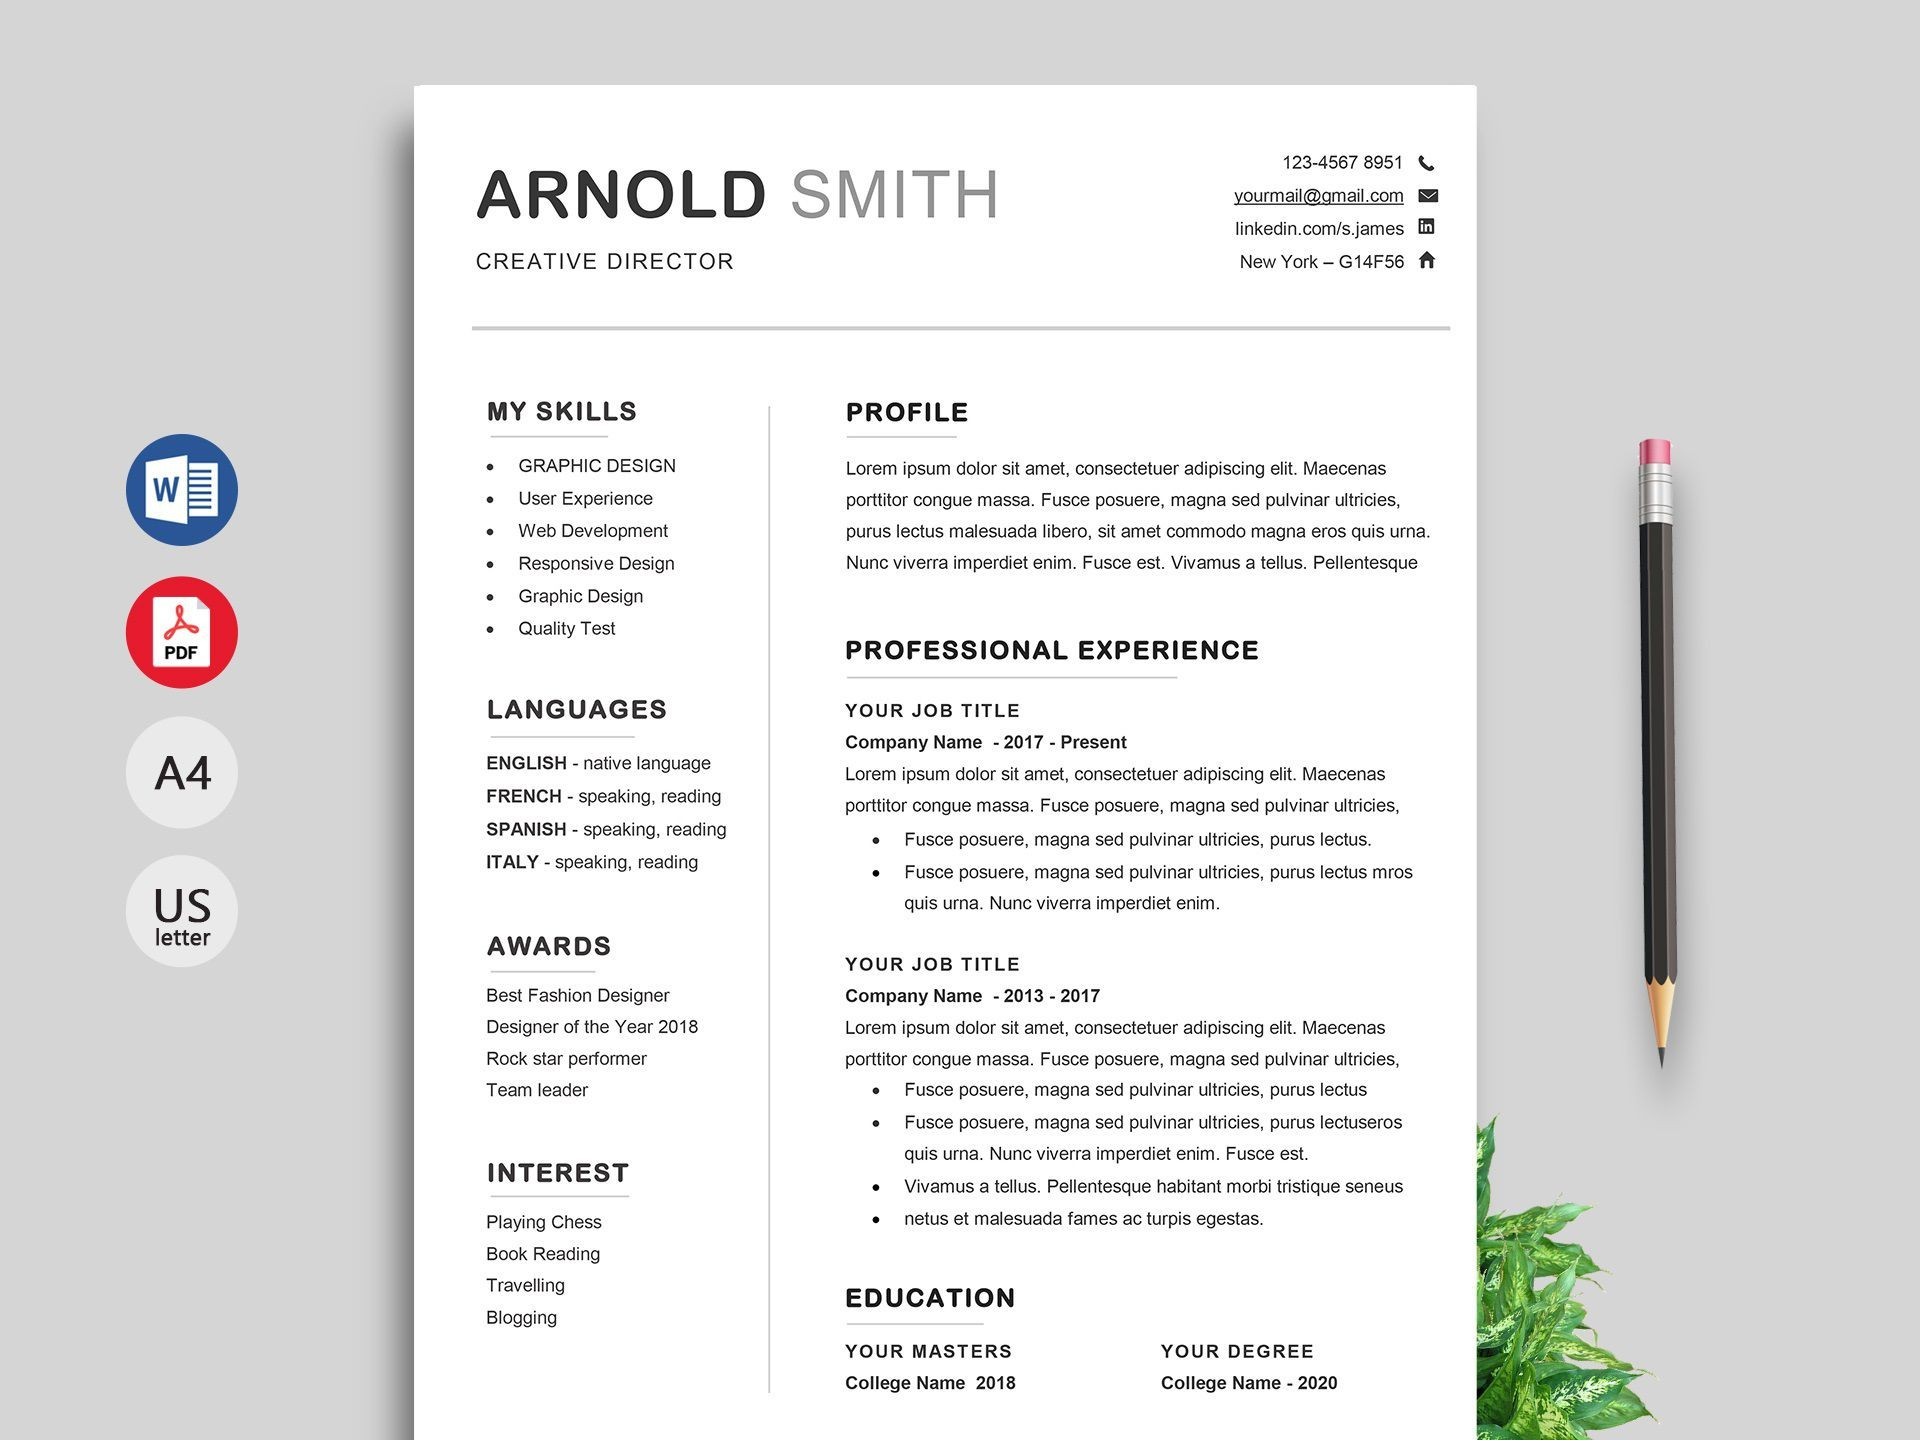 002 Impressive Professional Resume Template Word Free Download High Def  Cv 2020 With Photo1920